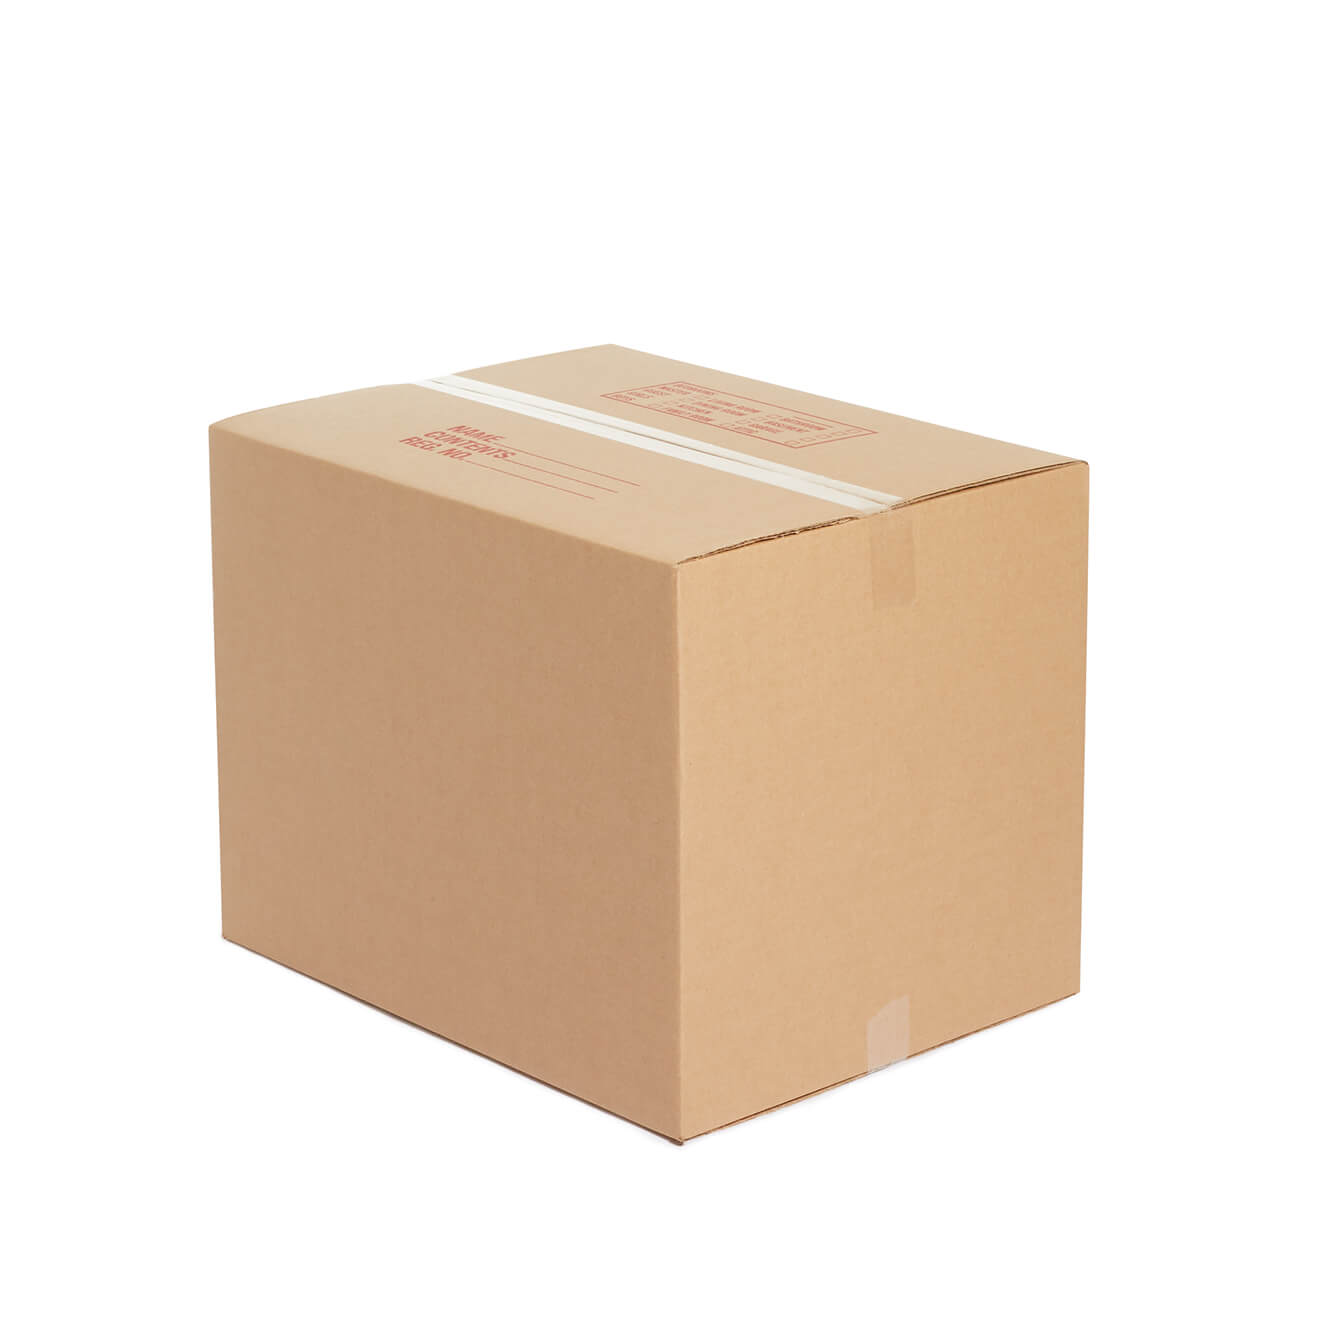 Large Box - 24″ x 18″ x 18″ Pack of 5